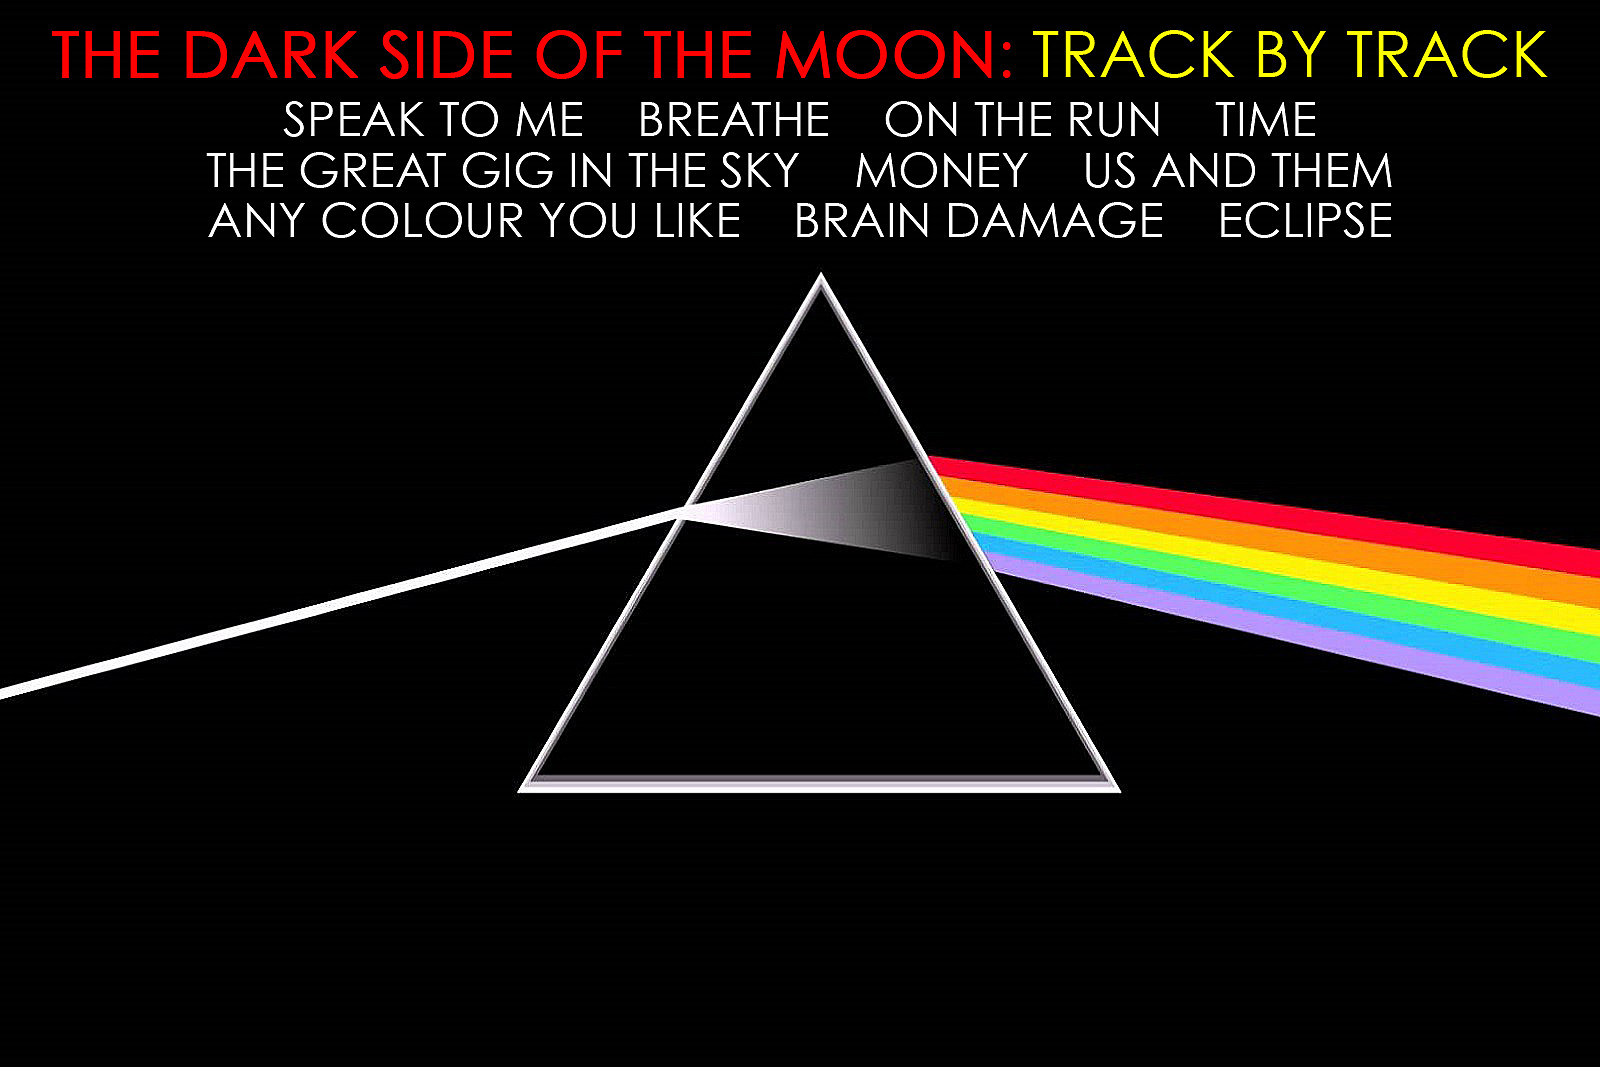 Pink Floyds The Dark Side Of The Moon A Track By Track Guide